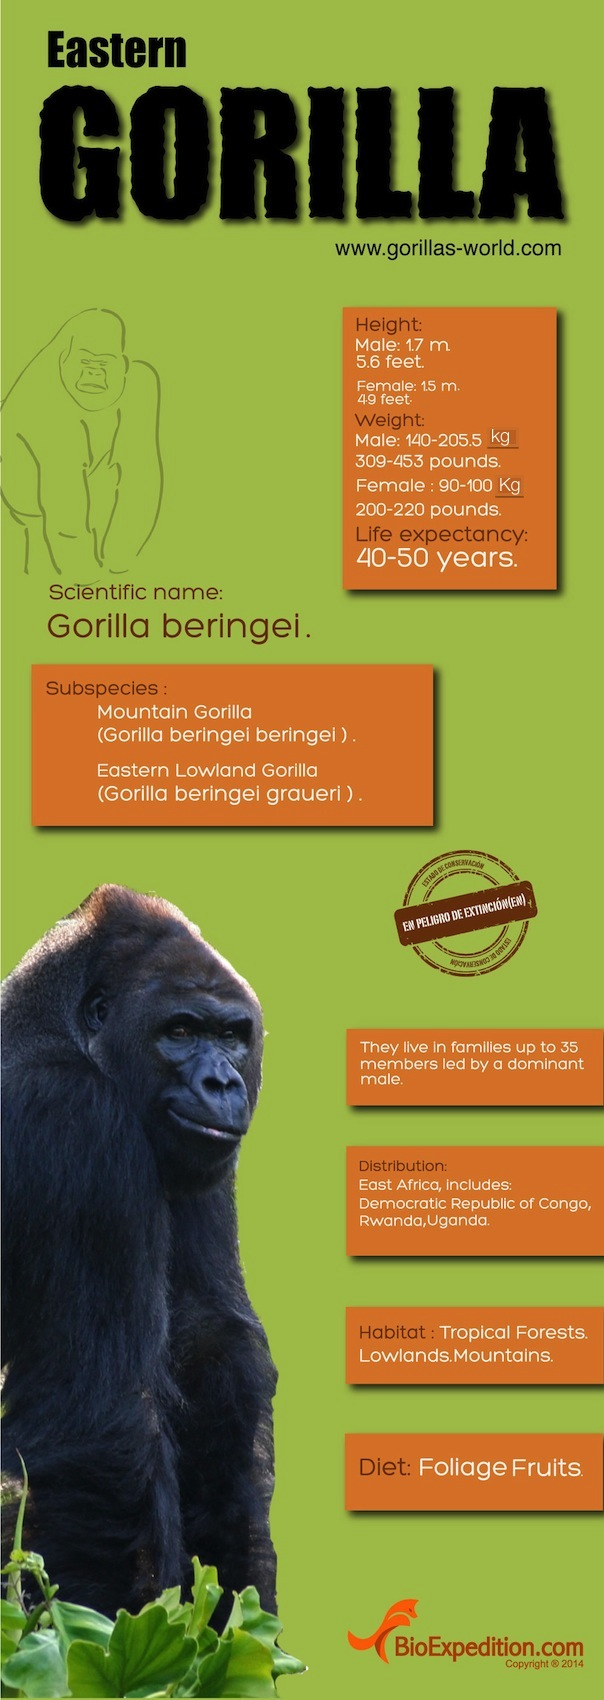 eastern_gorilla-copia1